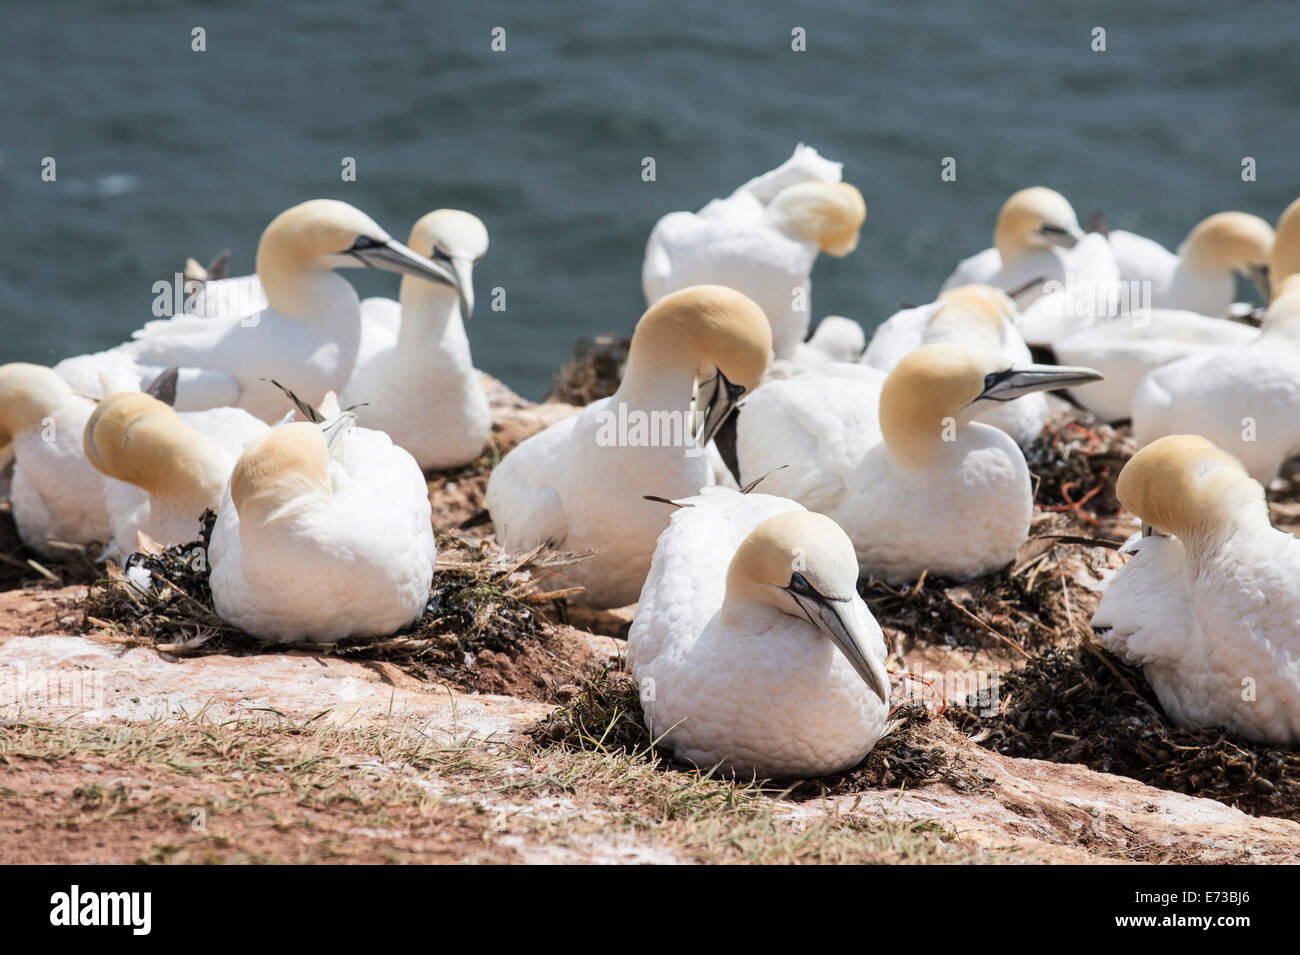 Northern gannet (Morus bassanus) colony, Heligoland, small German archipelago in the North Sea, Germany, Europe - Stock Image